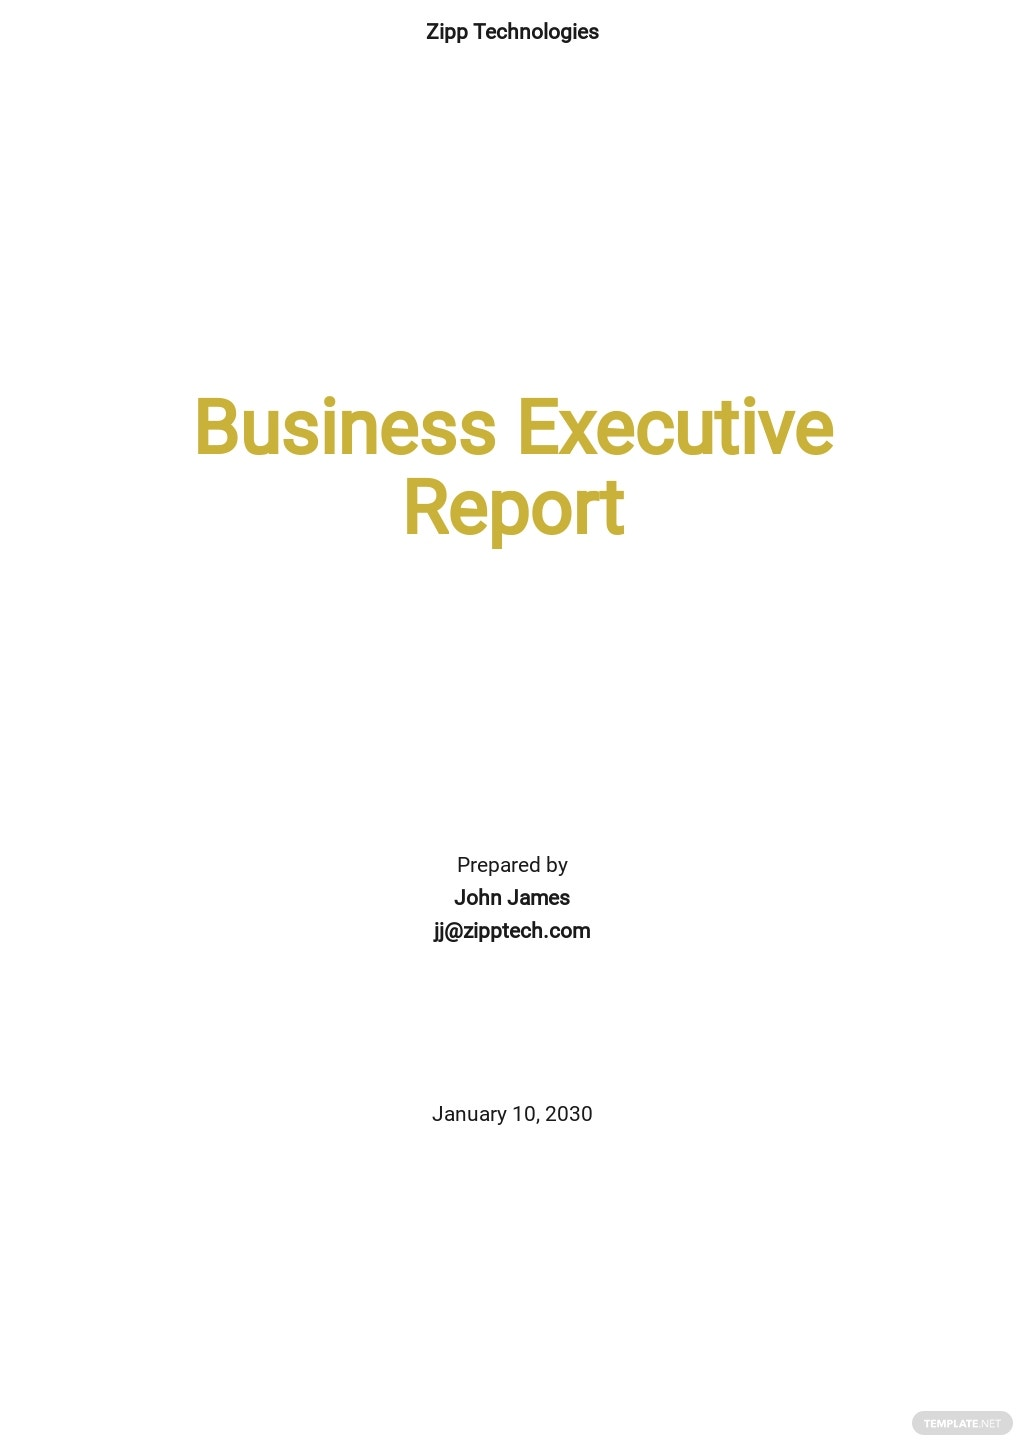 Business Executive Report Template